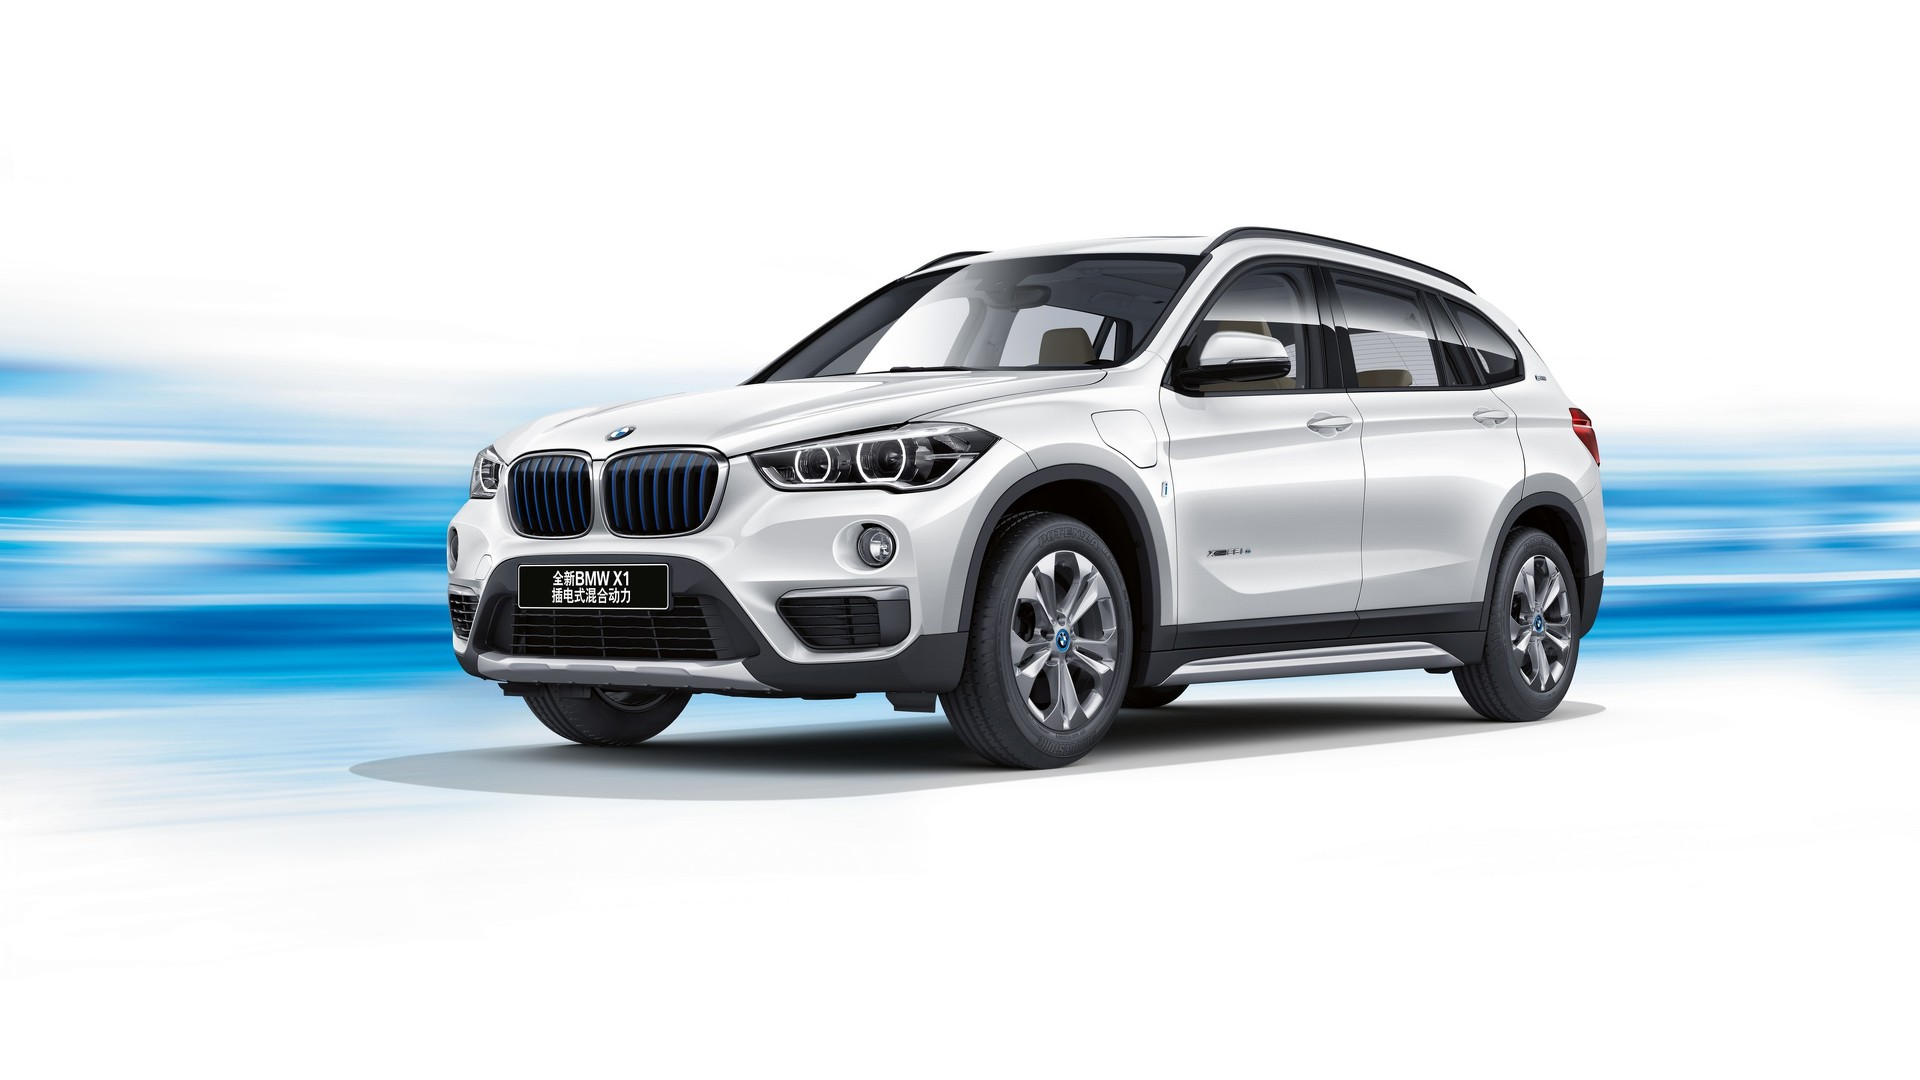 Bmw X1 Xdrive25le Debuts In China With 68 Miles Of Electric Range